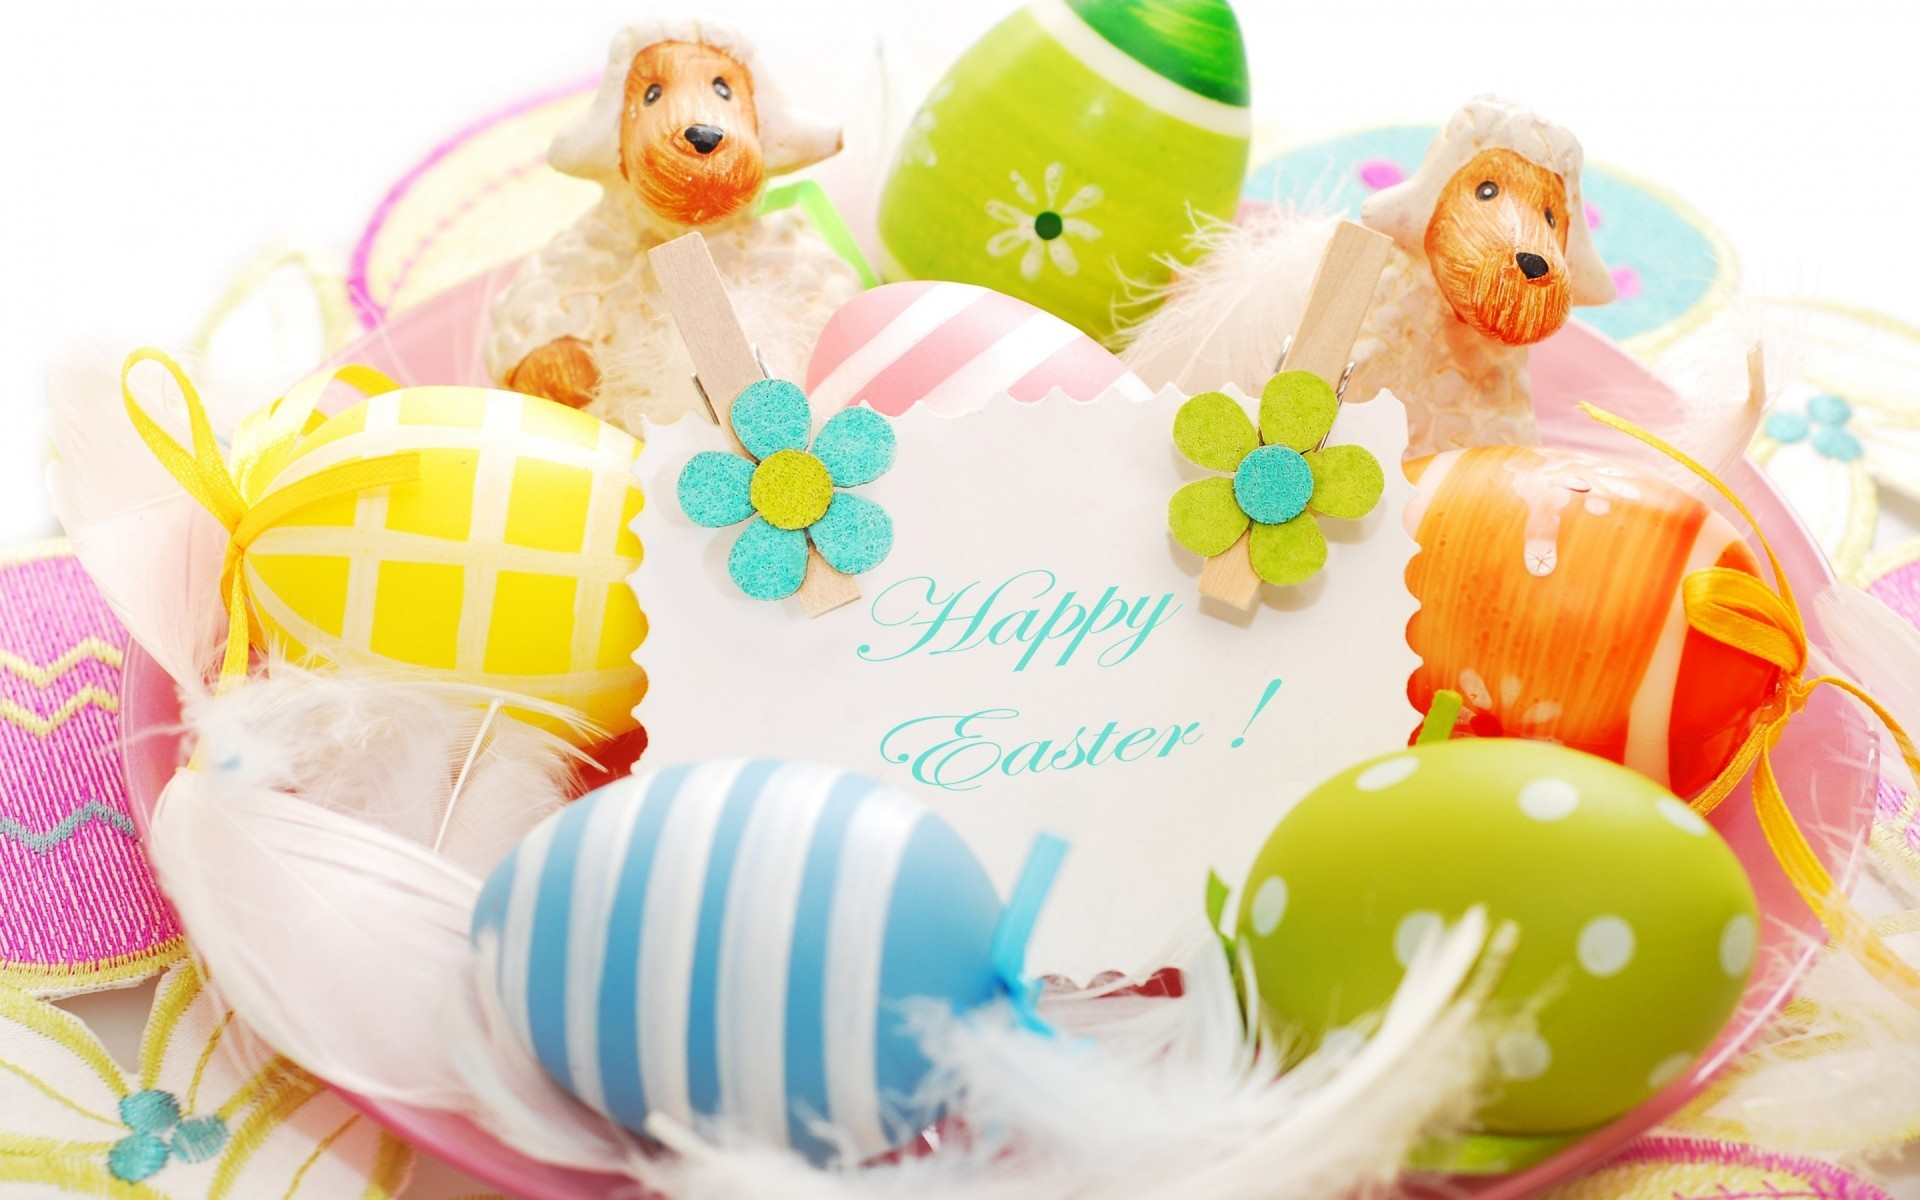 easter easter egg celebration egg bunny decoration rabbit fun traditional desktop flower gift thread color vacation 2014 easter easter eggs 2014 easter eggs